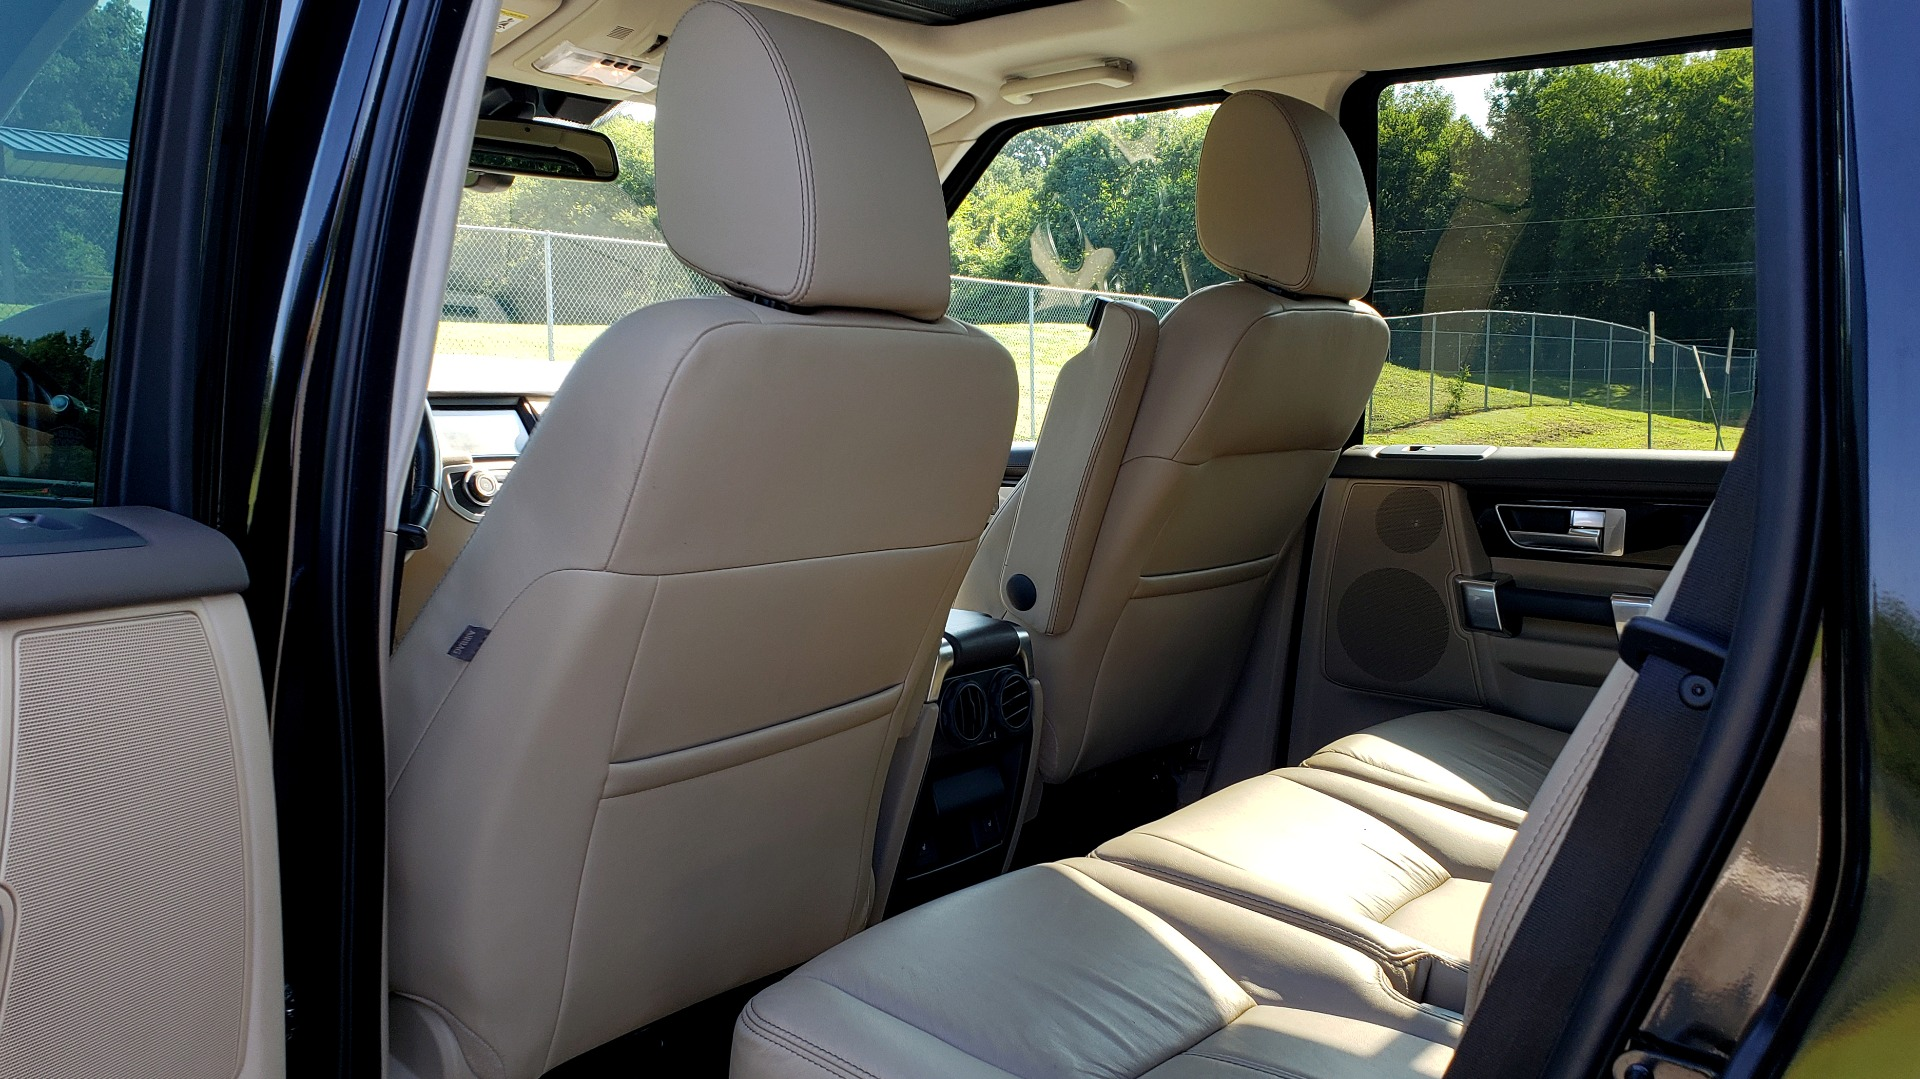 Used 2016 Land Rover LR4 HSE LUX LANDMARK EDITION / NAV / HTD STS / SUNROOF / REARVIEW for sale Sold at Formula Imports in Charlotte NC 28227 63